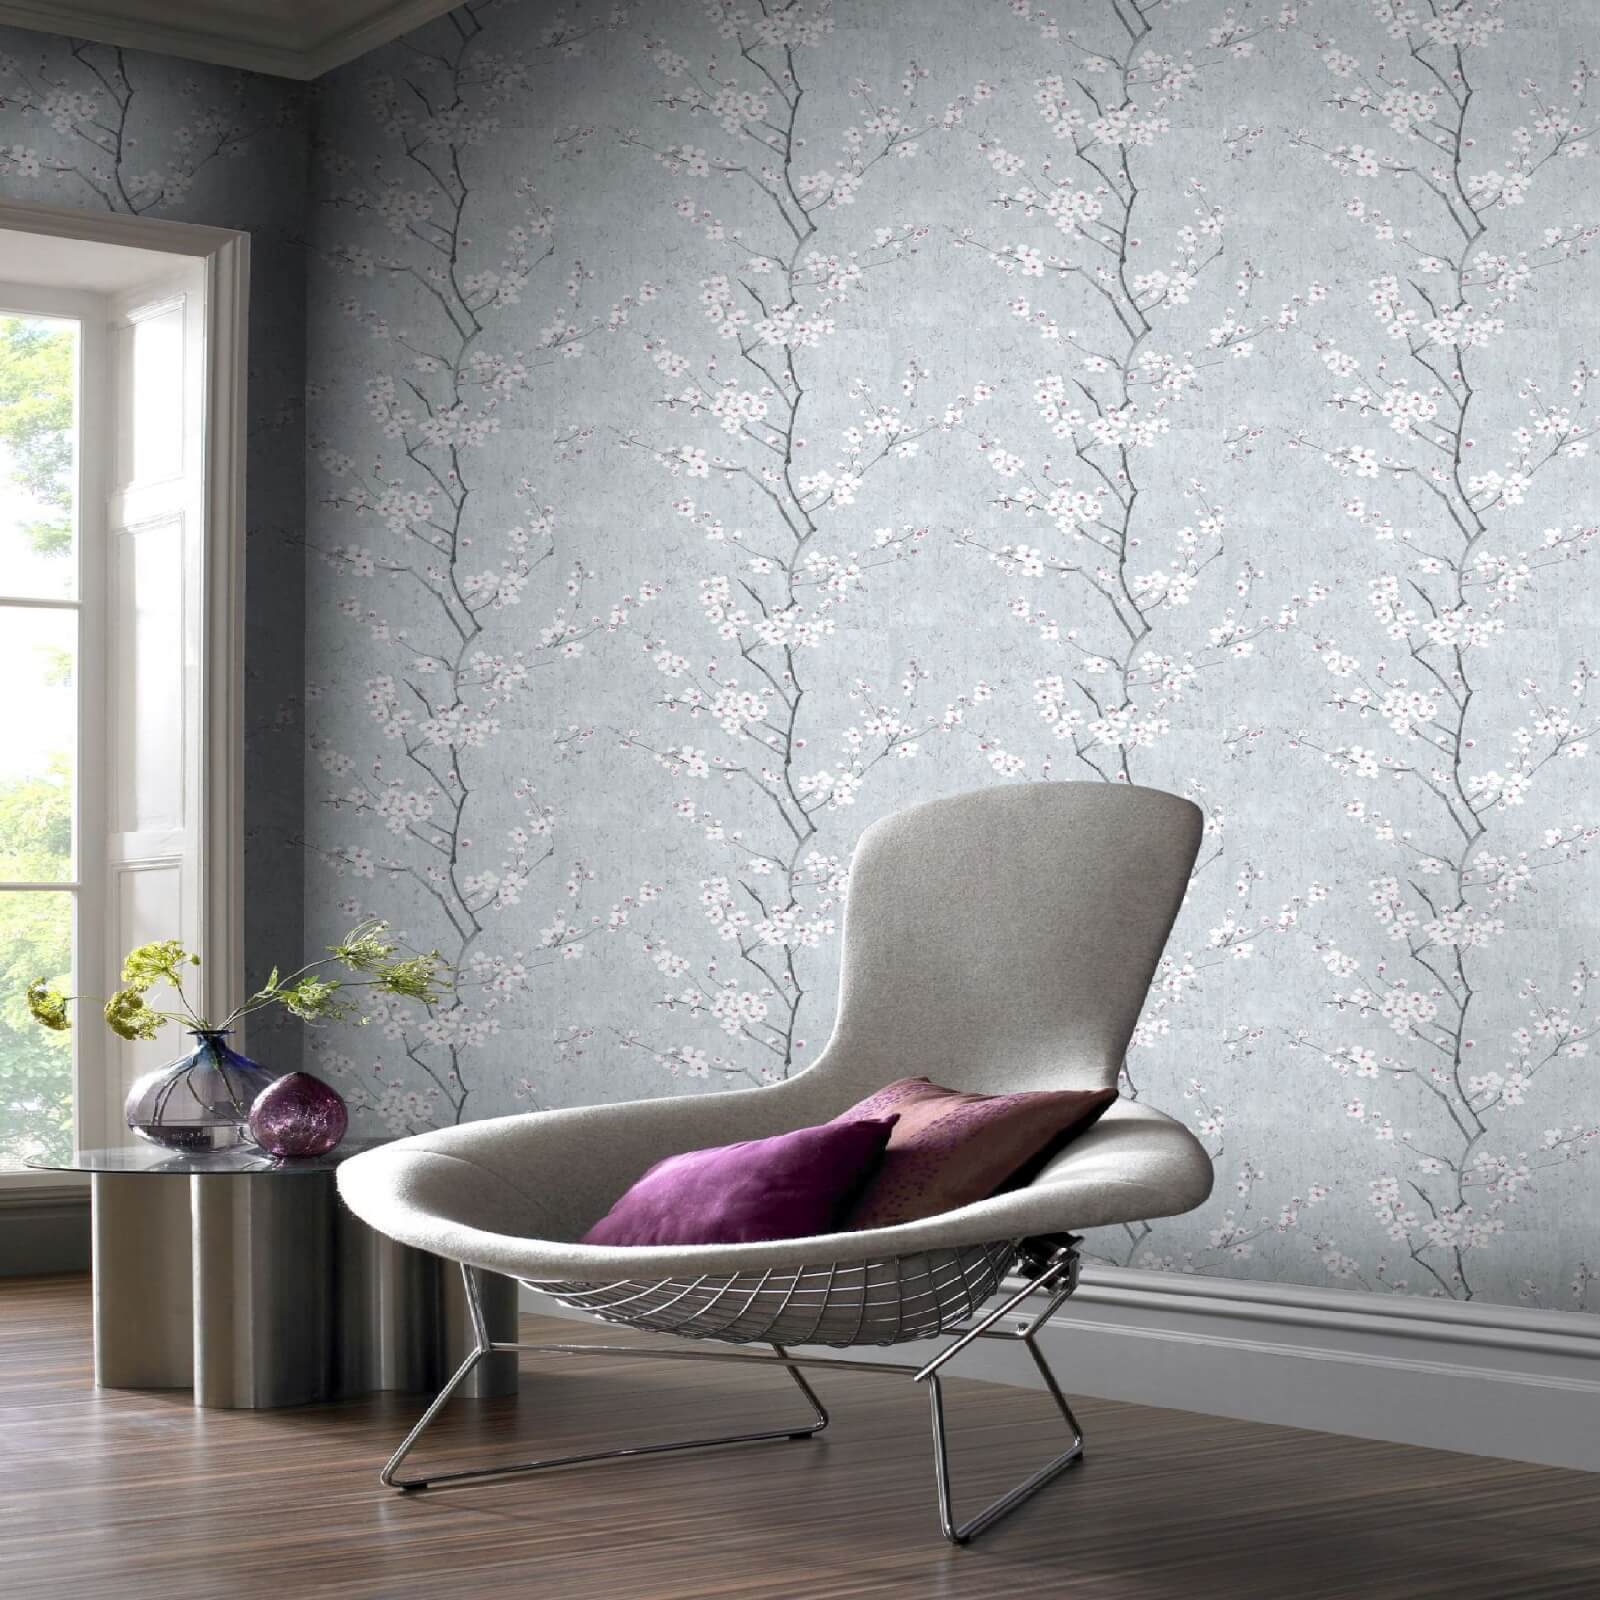 Boutique Sakura Cork Effect Metallic Cherry Blossom Wallpaper - Pale Blue/Silver